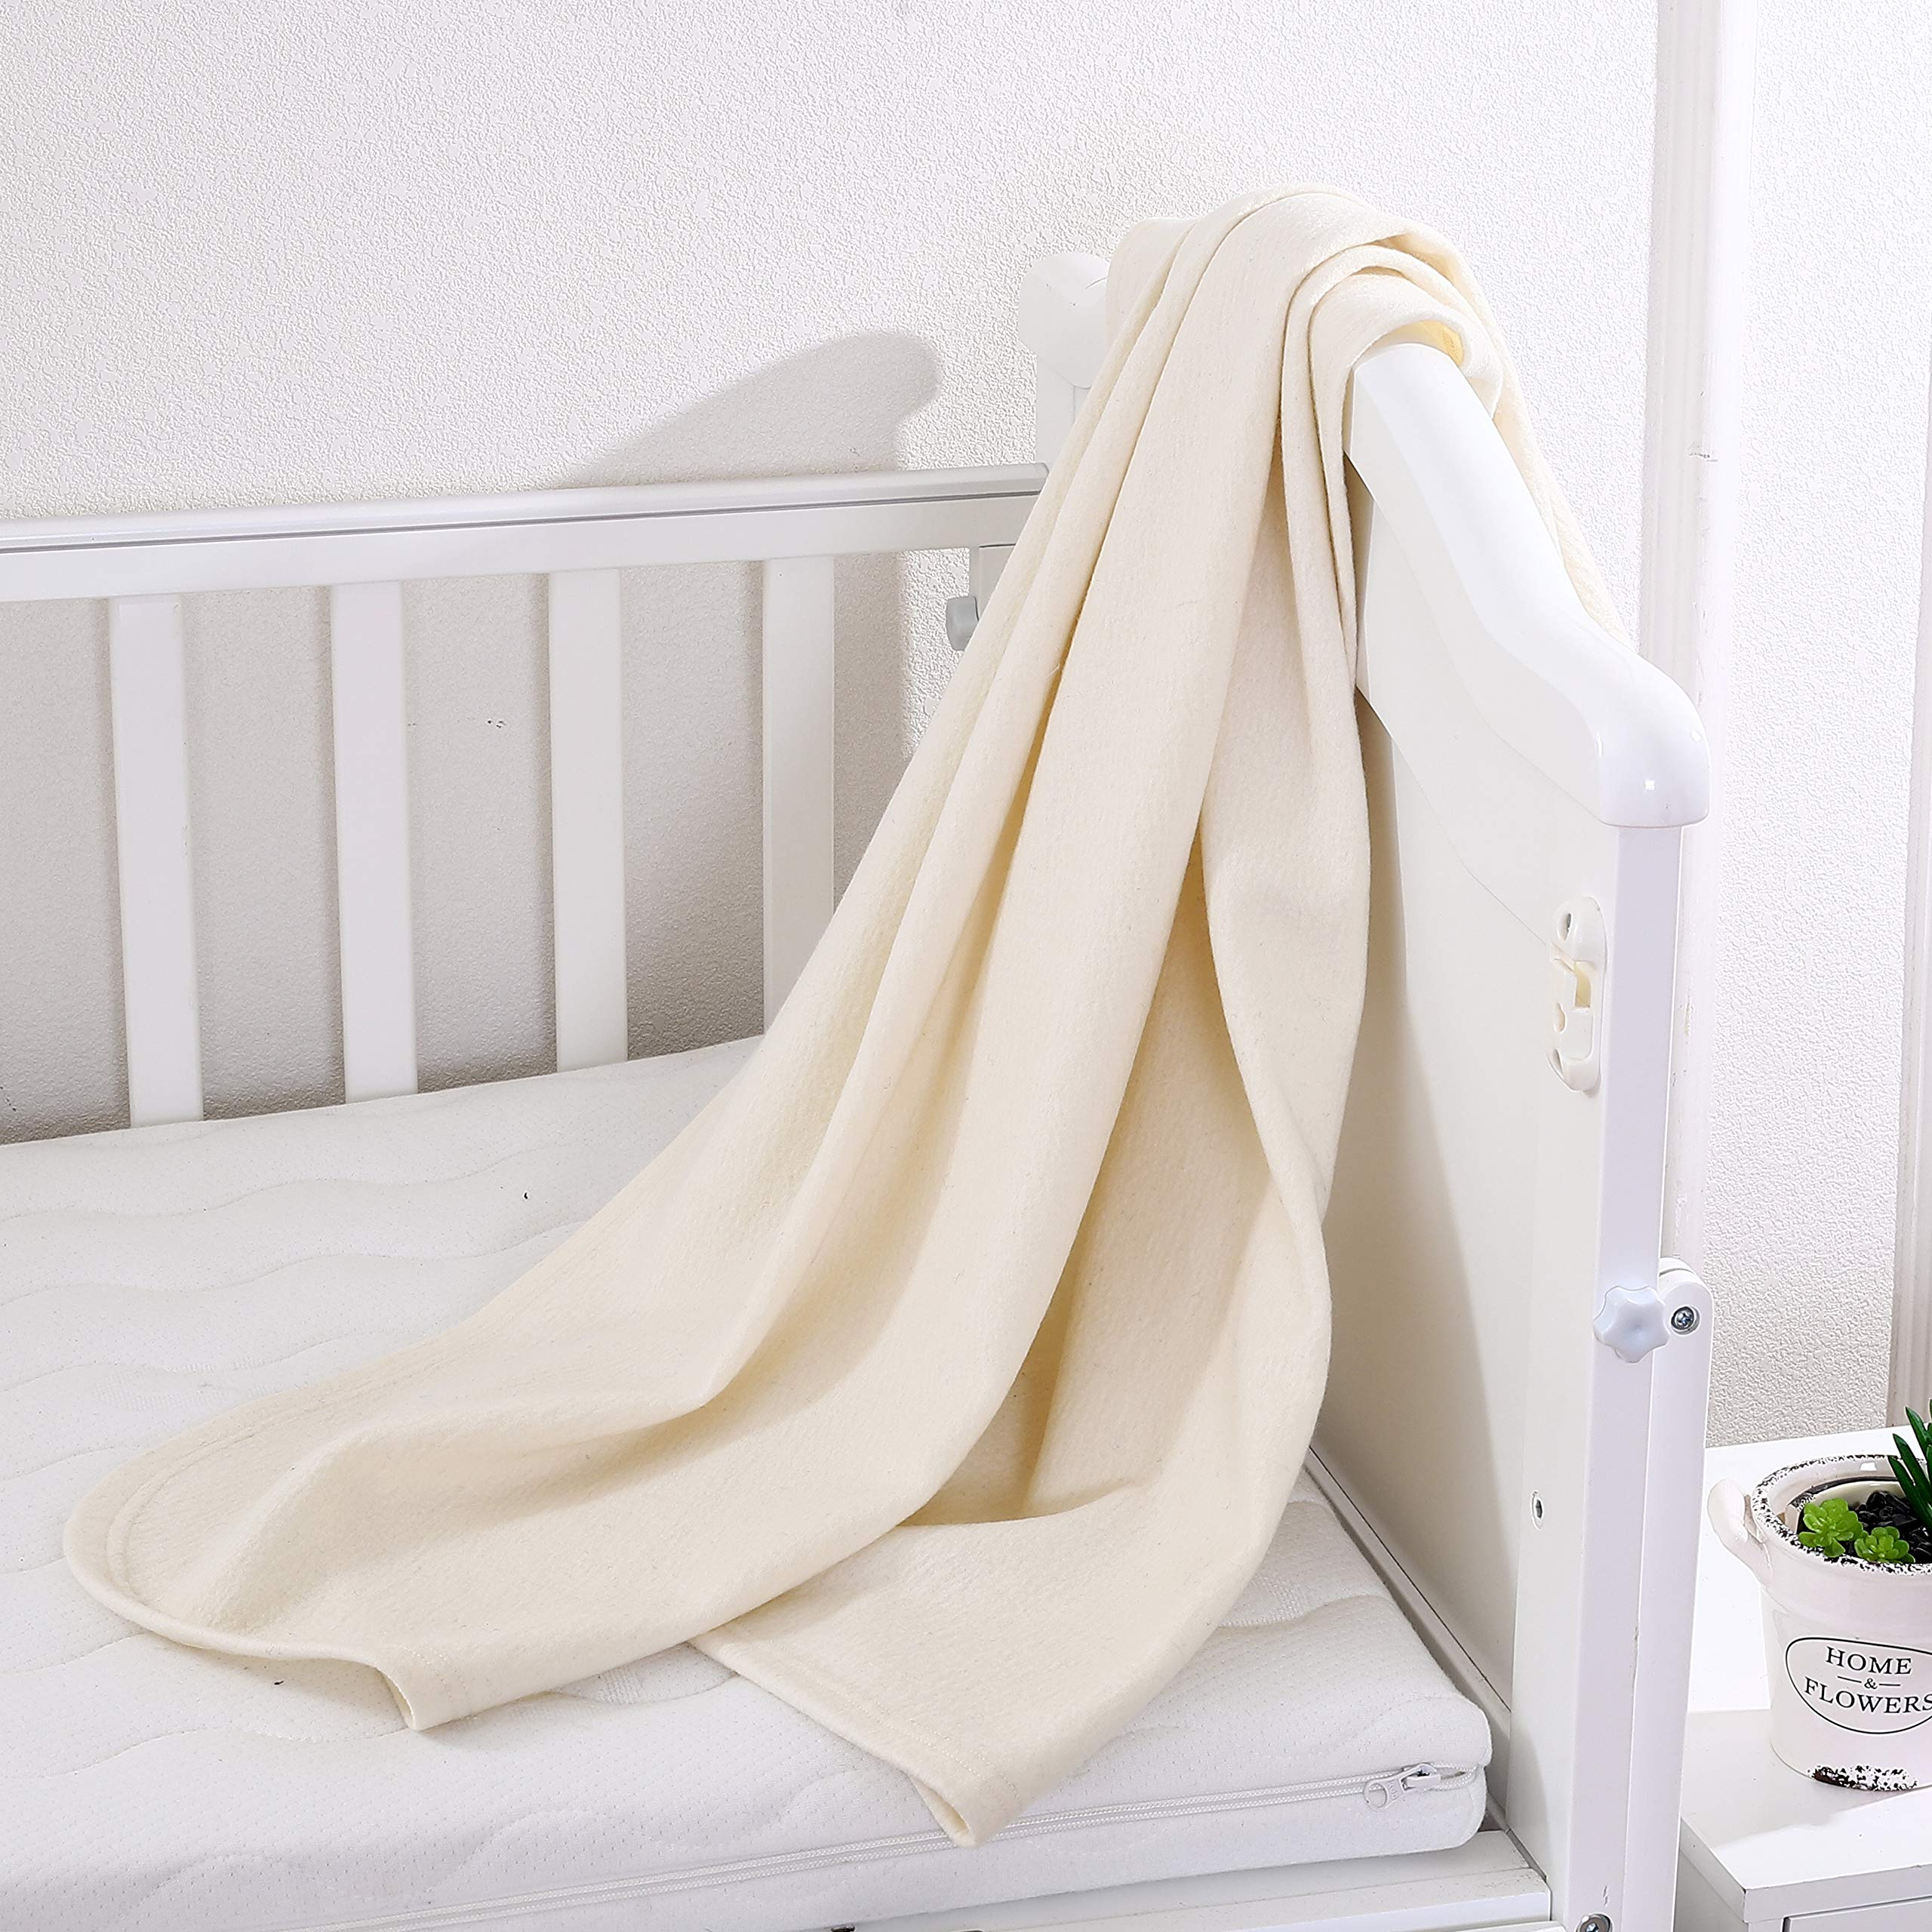 PuTian Kids Australian Merino Wool Blanket Throw for Kids Baby, Breathable, Ultrasoft, Lightweight, White, 41by39 inches by PuTian